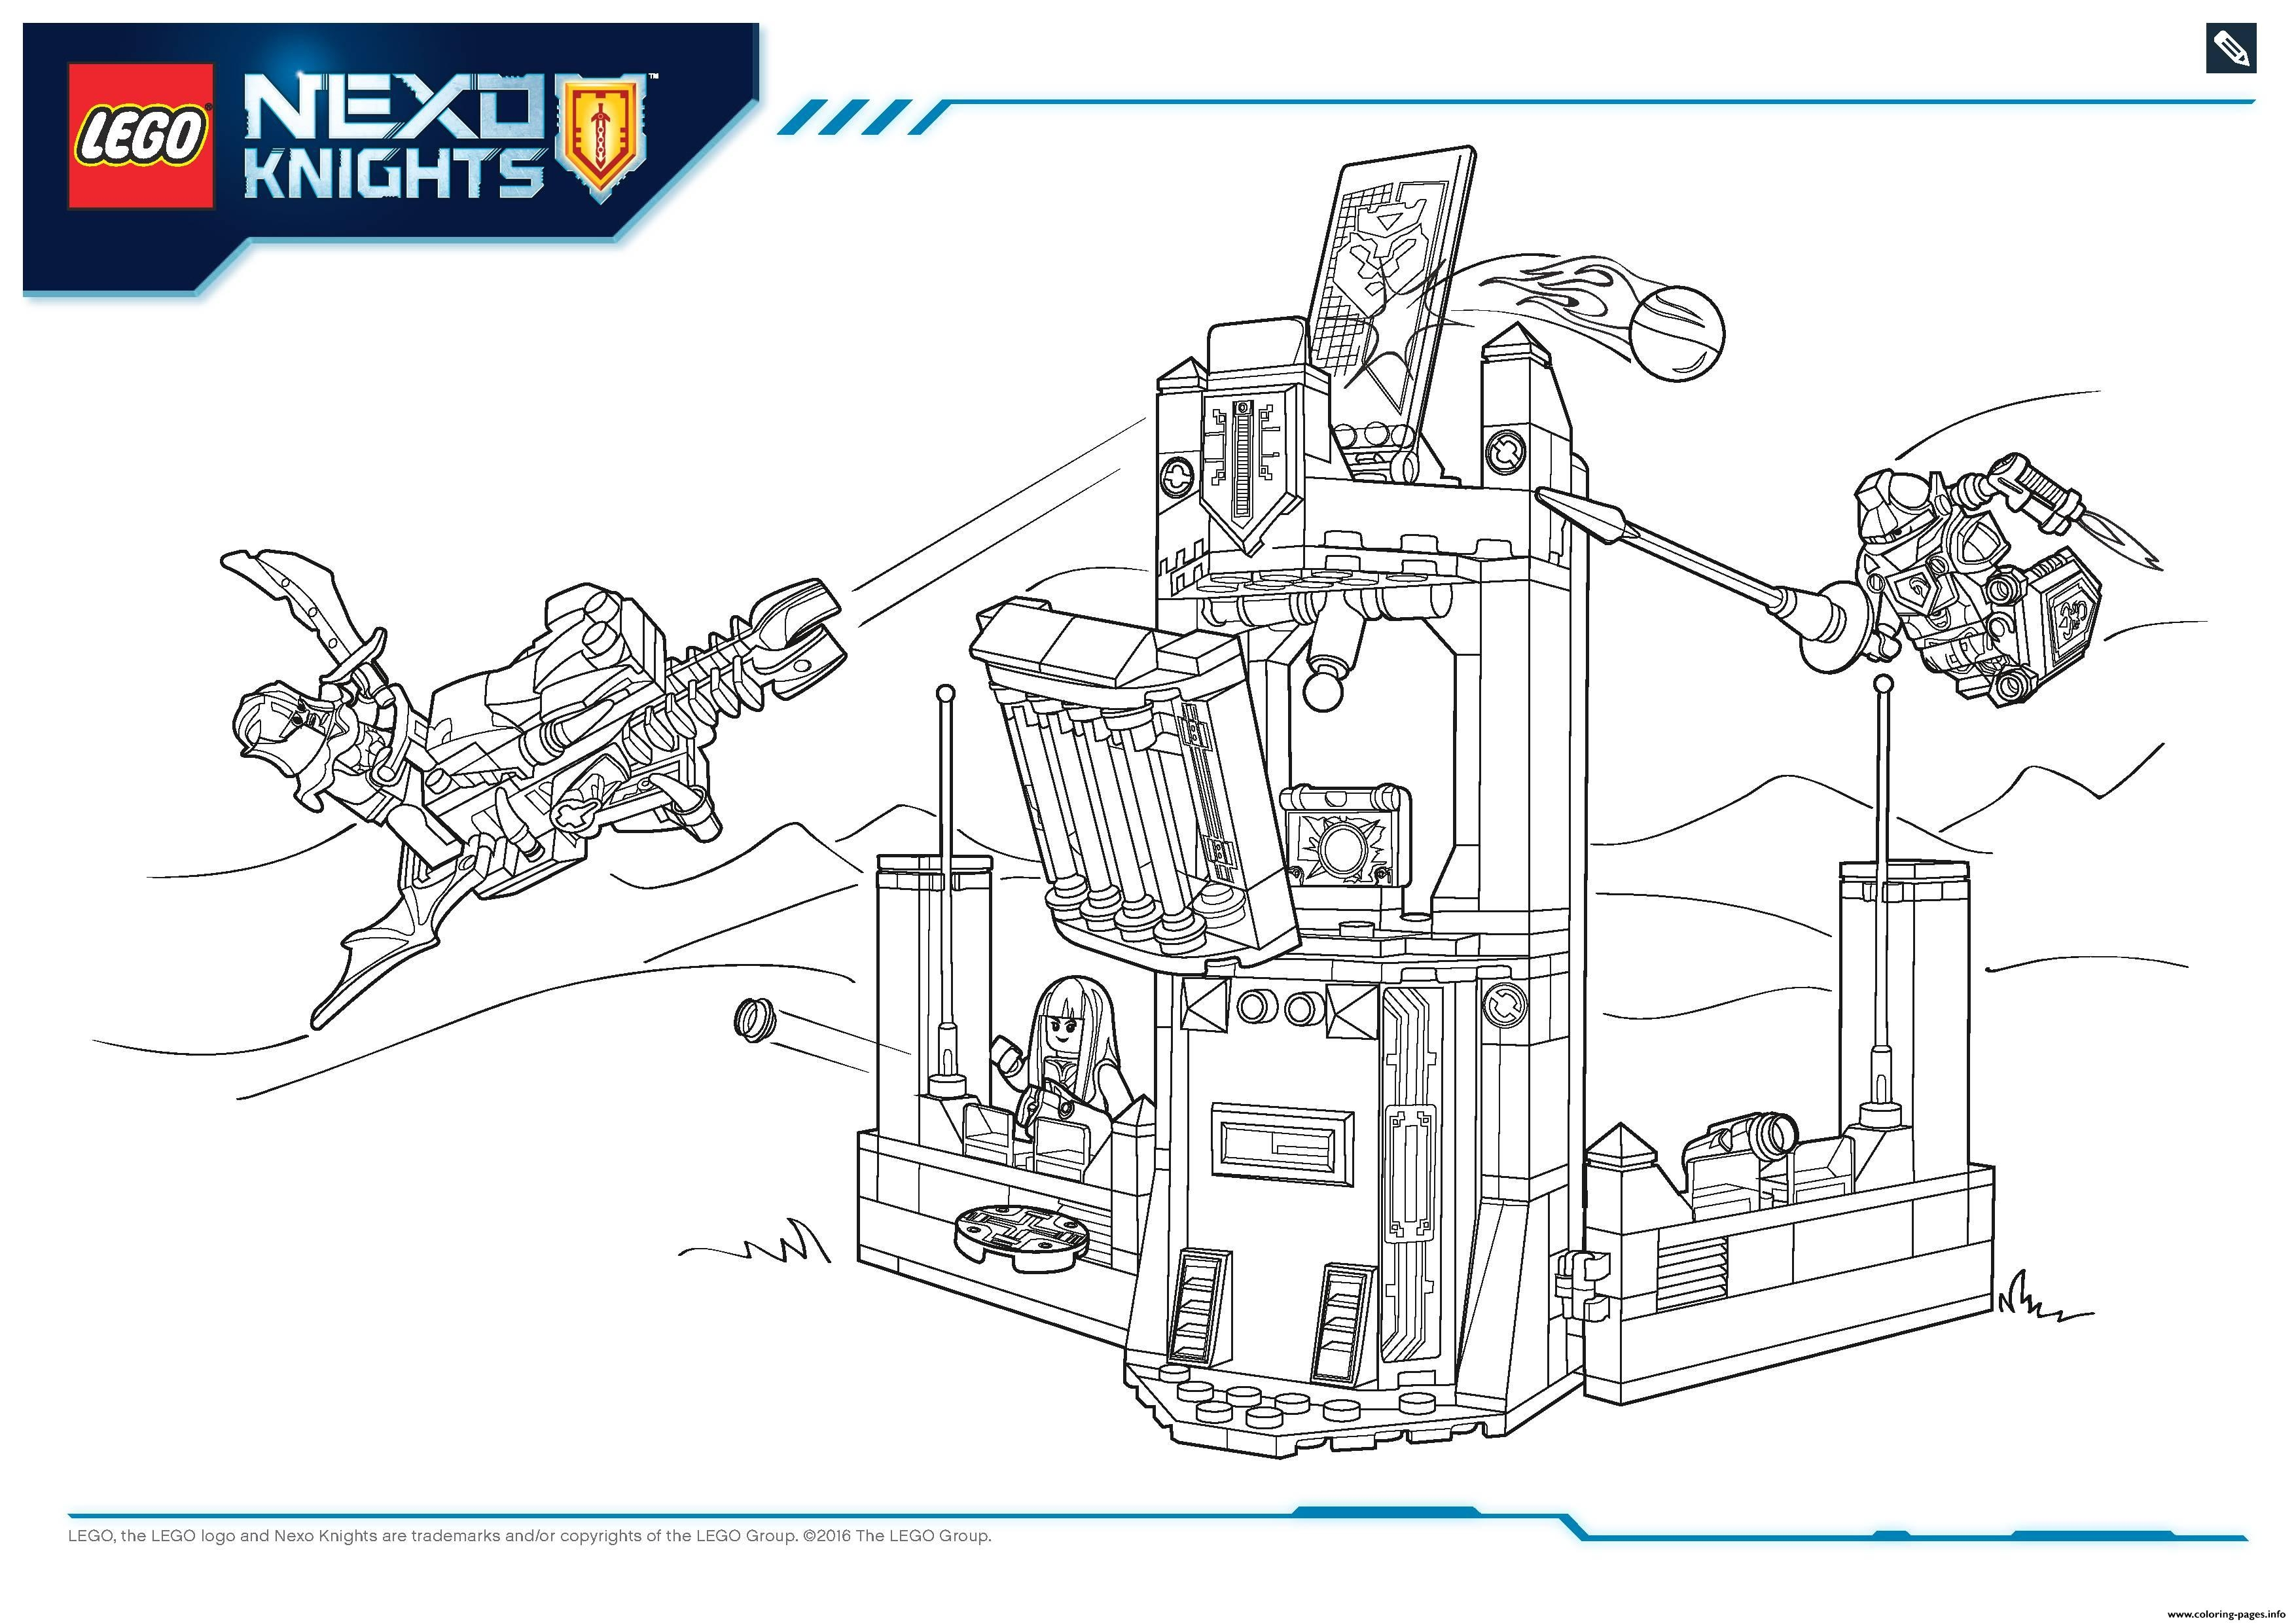 nexo knight coloring pages - lego nexo knights file page6 printable coloring pages book